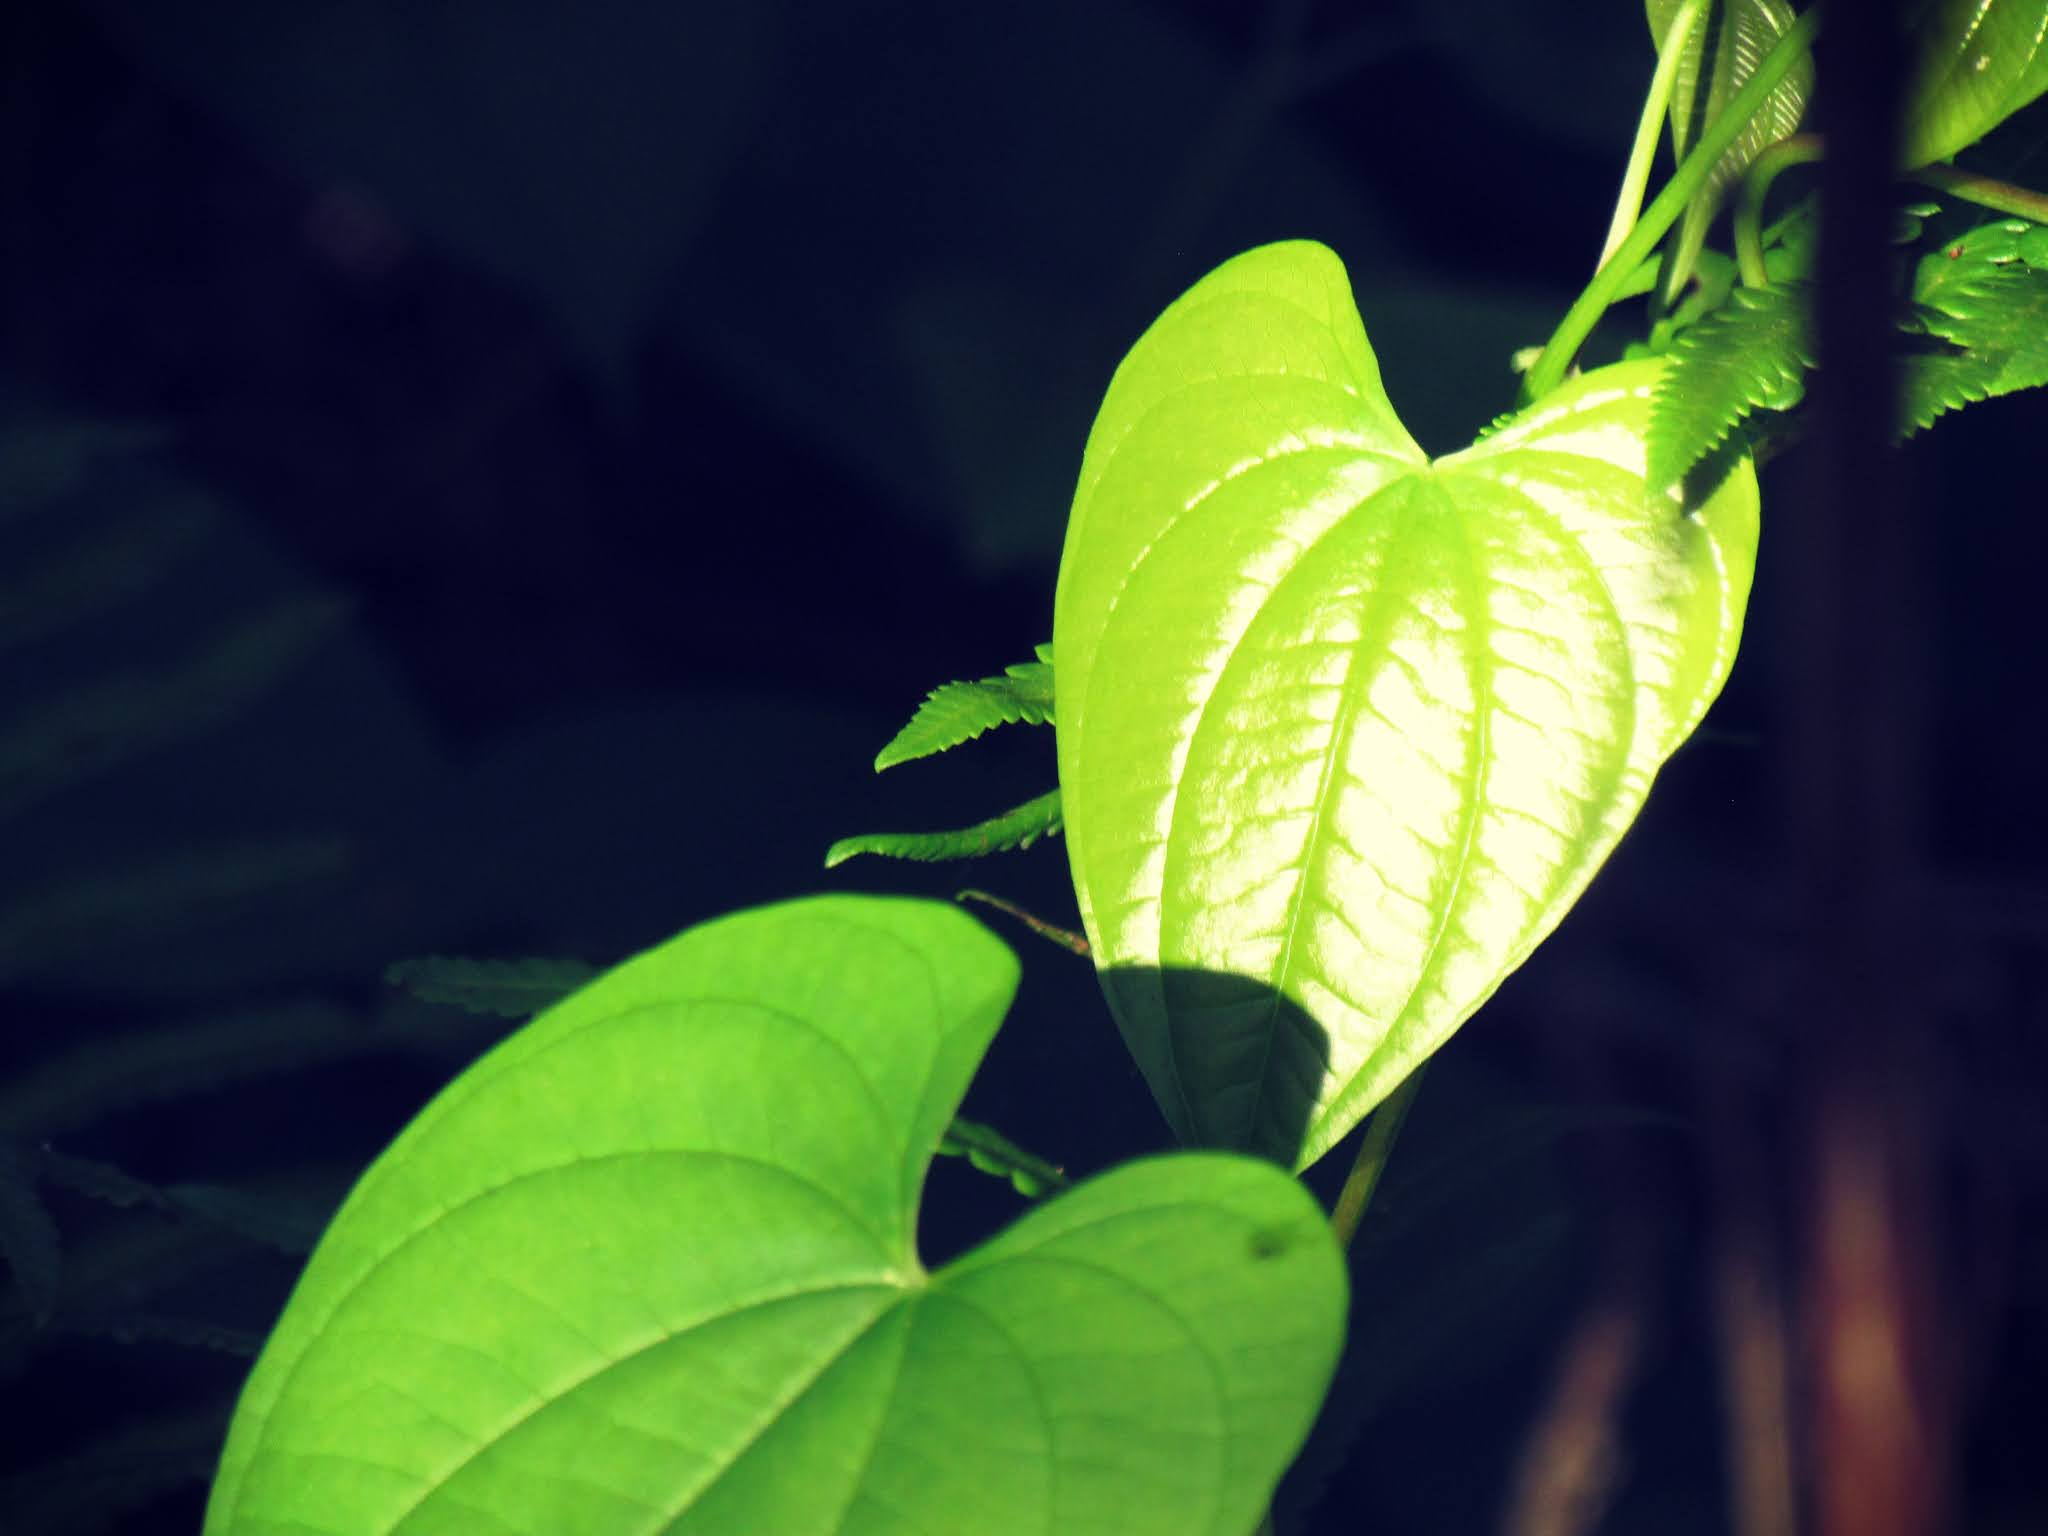 a love story in the forest with emerald green heart-shaped leaves and shadow lighting